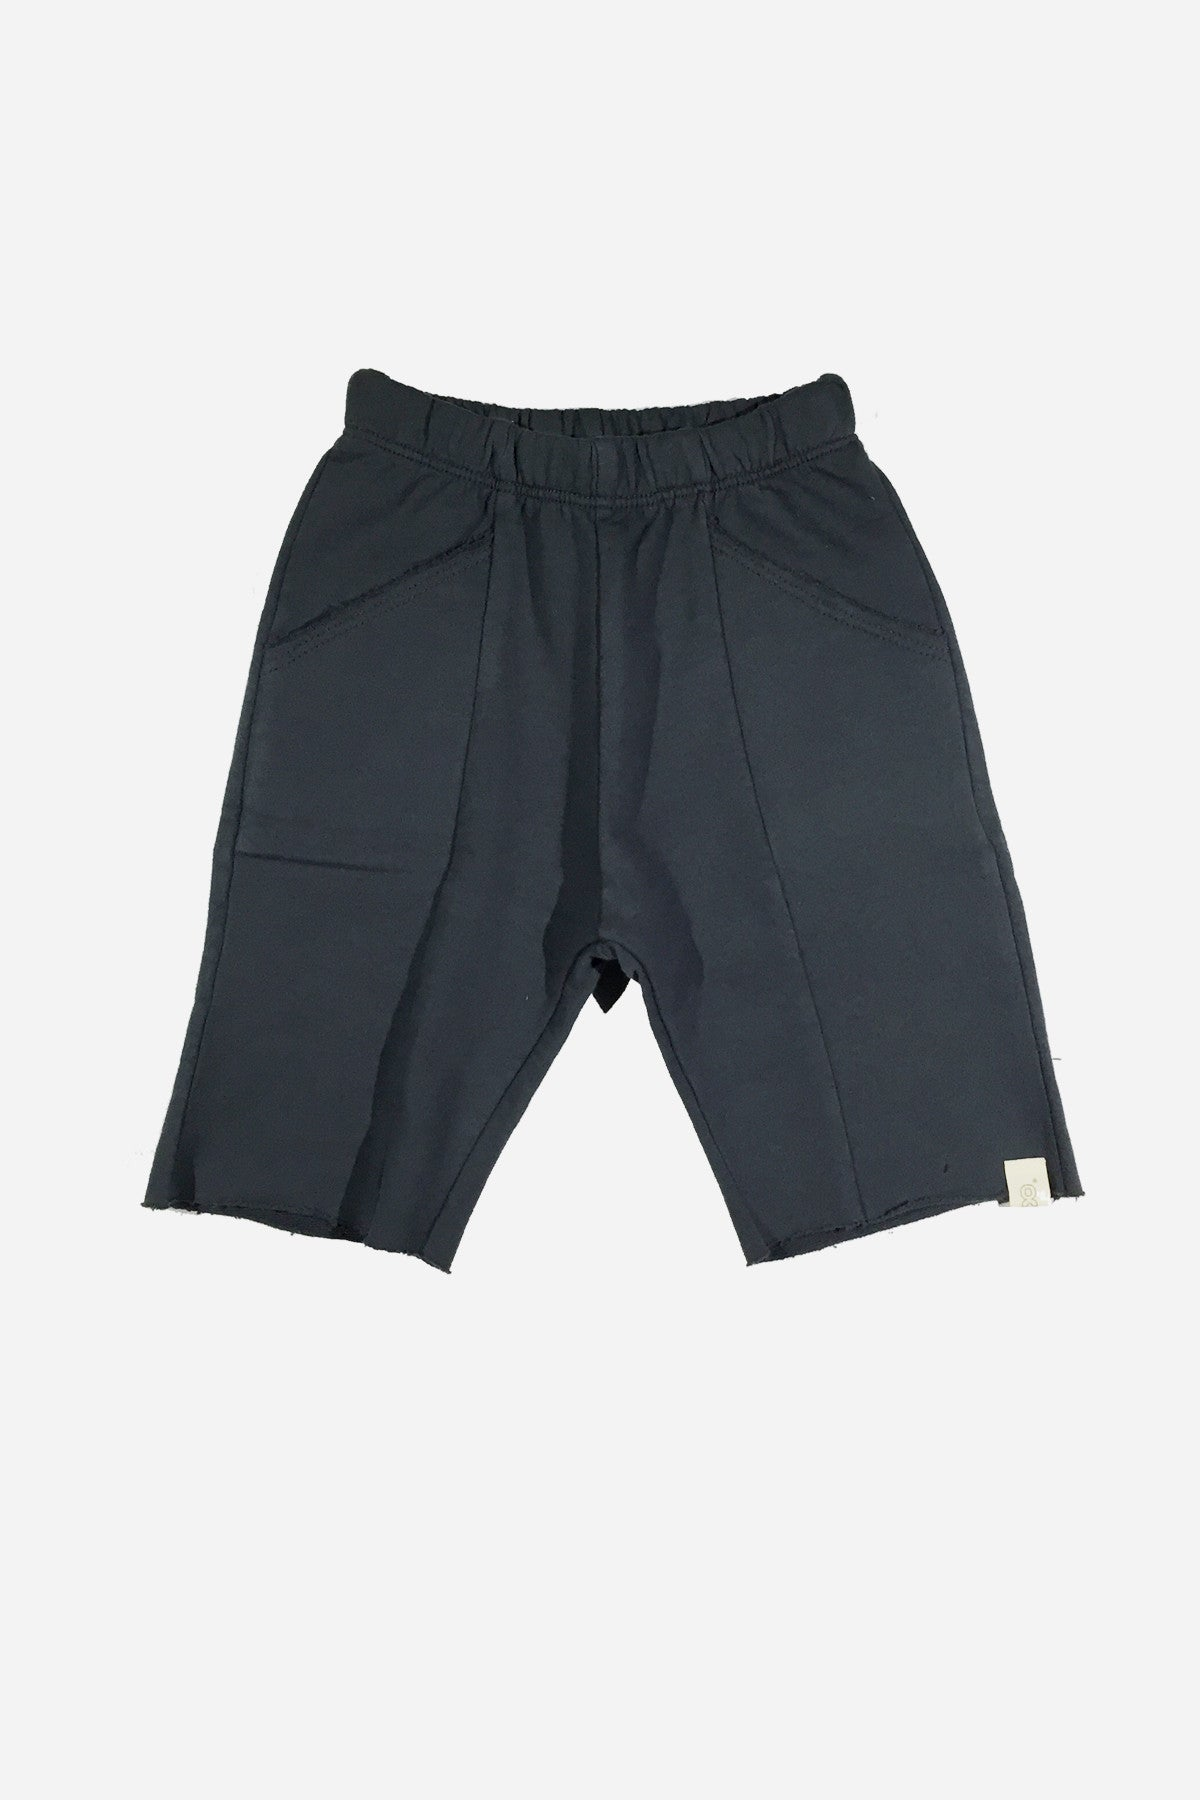 Go Gently Baby Charcoal Surfer Boys Short